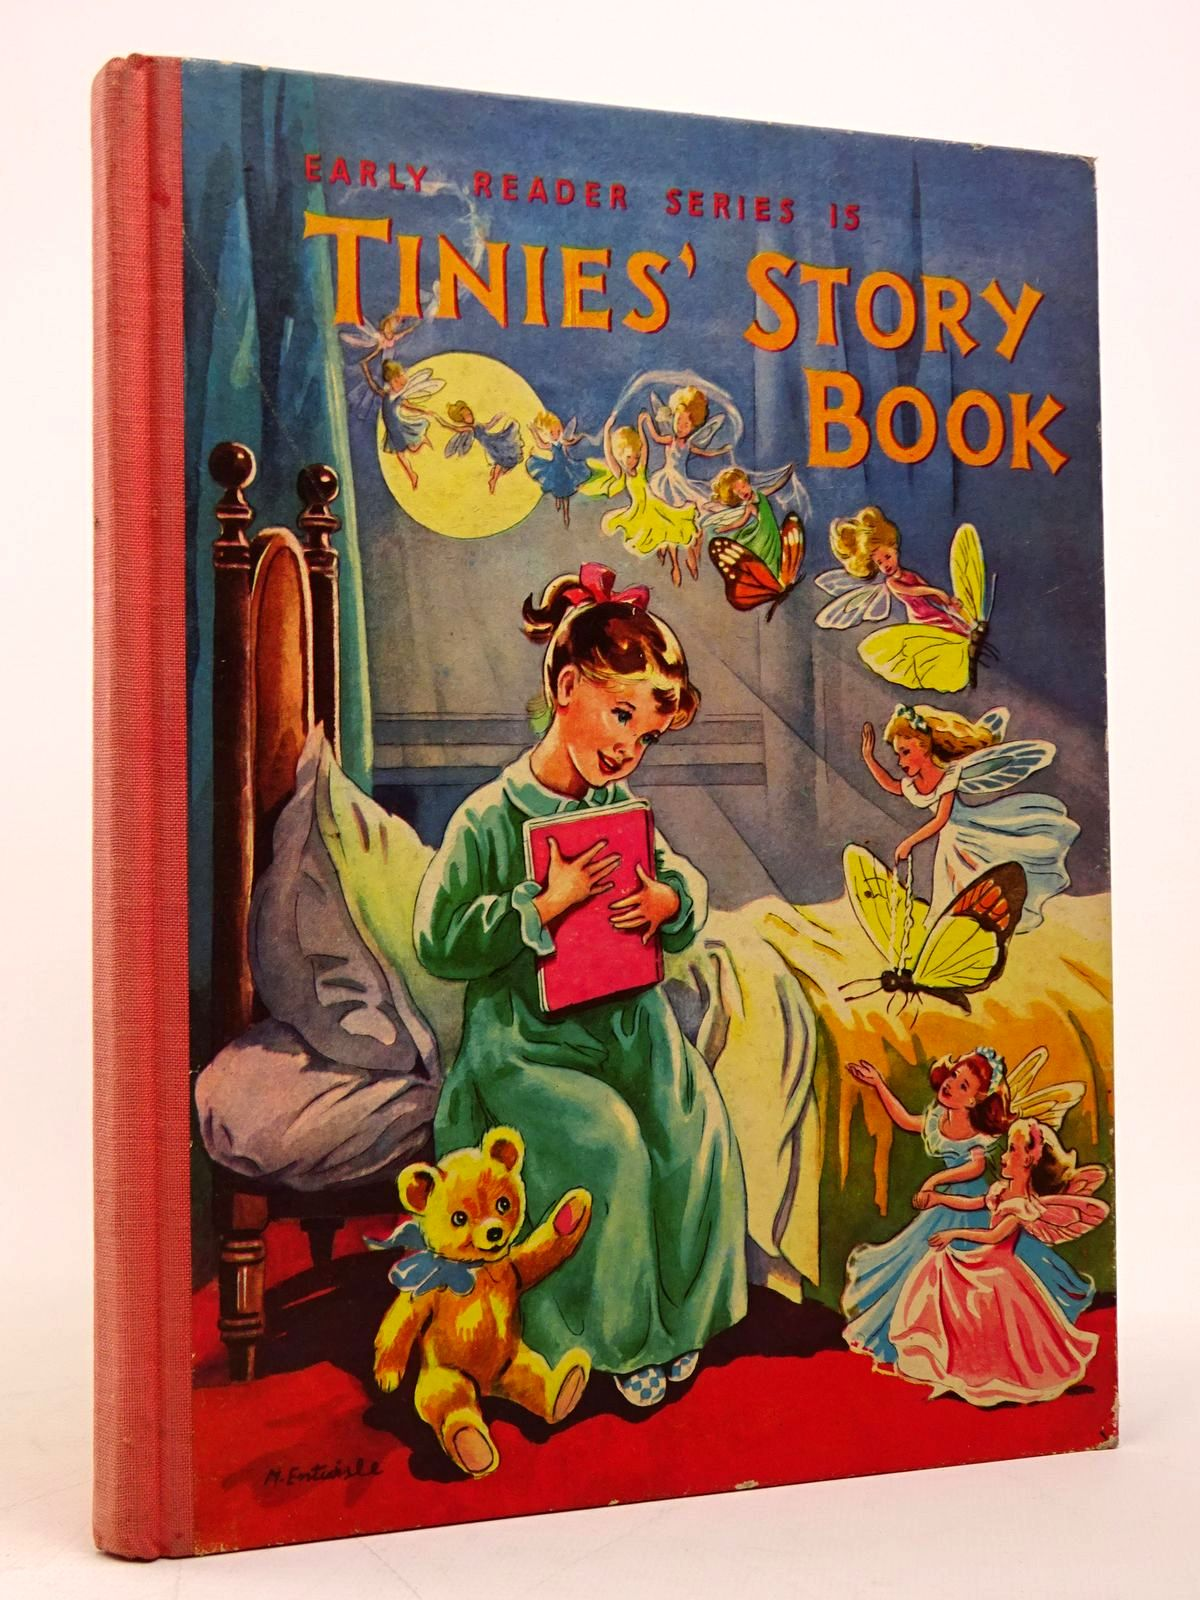 Photo of TINIES' STORY BOOK (EARLY READER SERIES No. 15) published by Hampster Books (STOCK CODE: 1817614)  for sale by Stella & Rose's Books